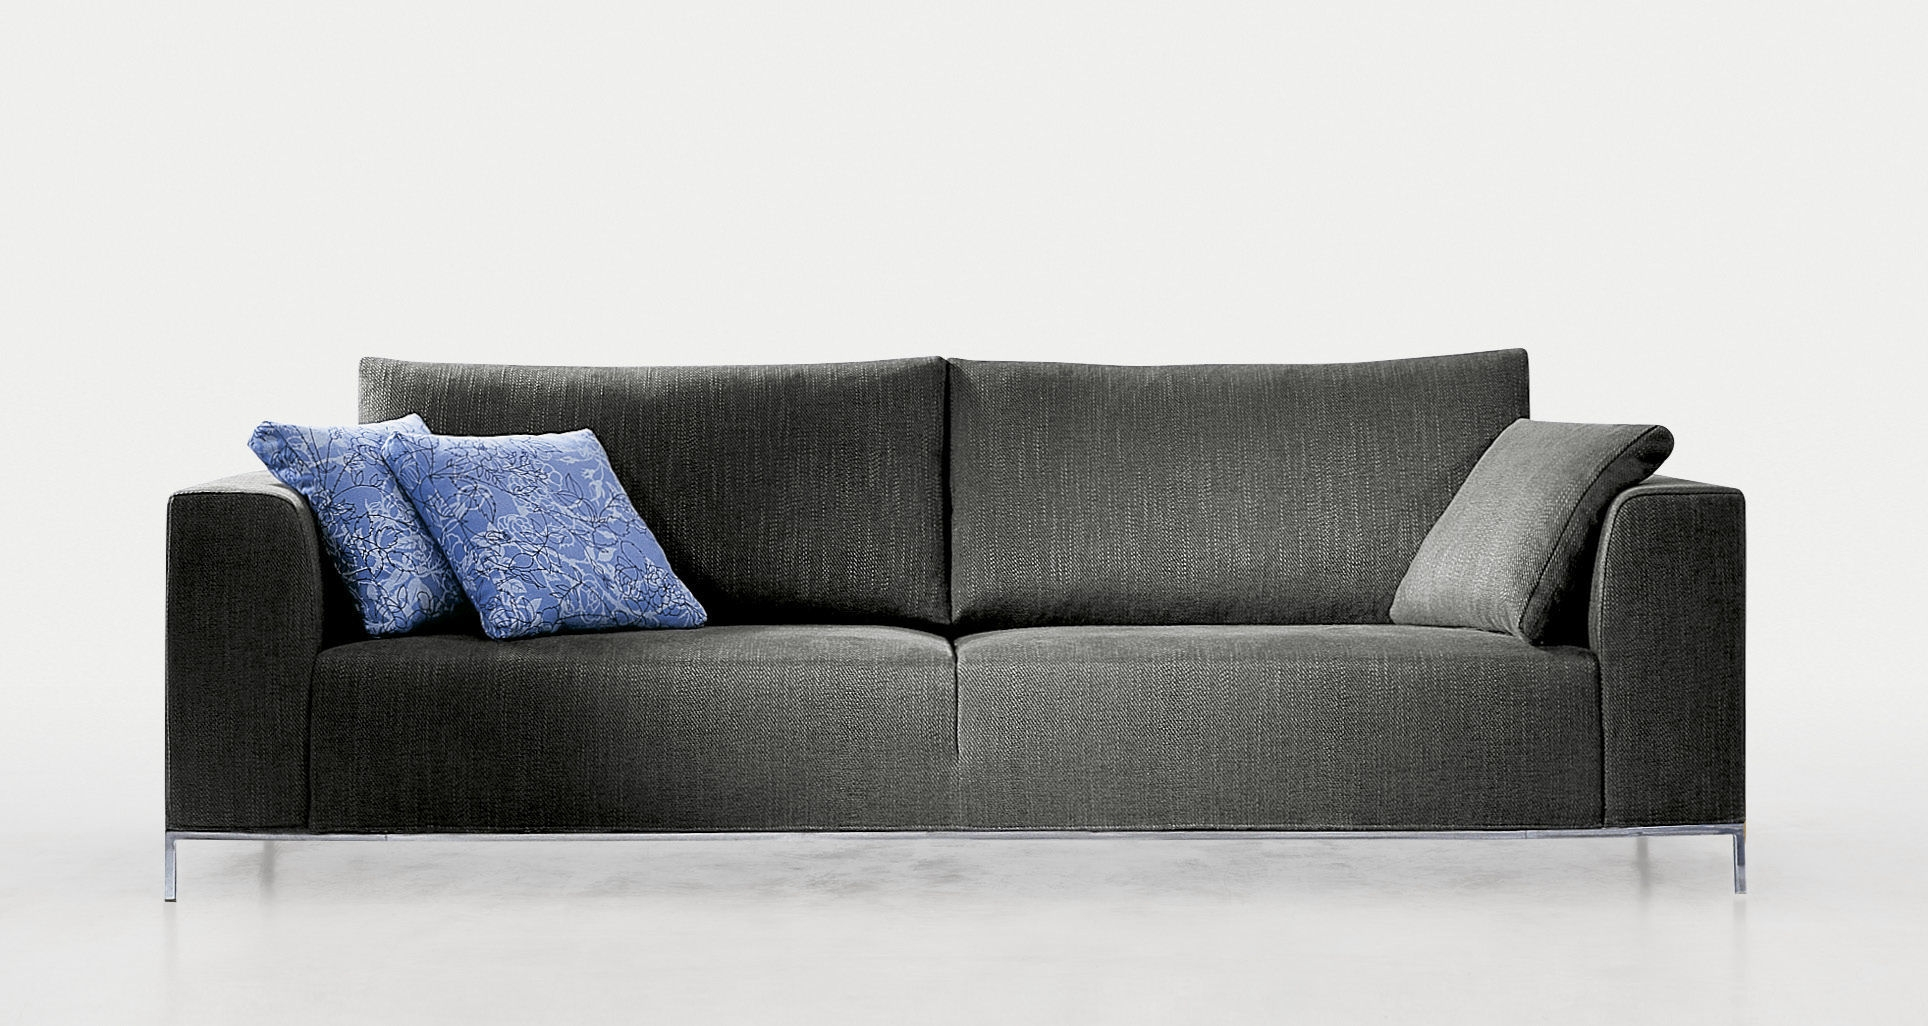 Contemporary Sofa Fabric 2 Seater With Removable Cover Within Sofa With Removable Cover (Image 3 of 15)